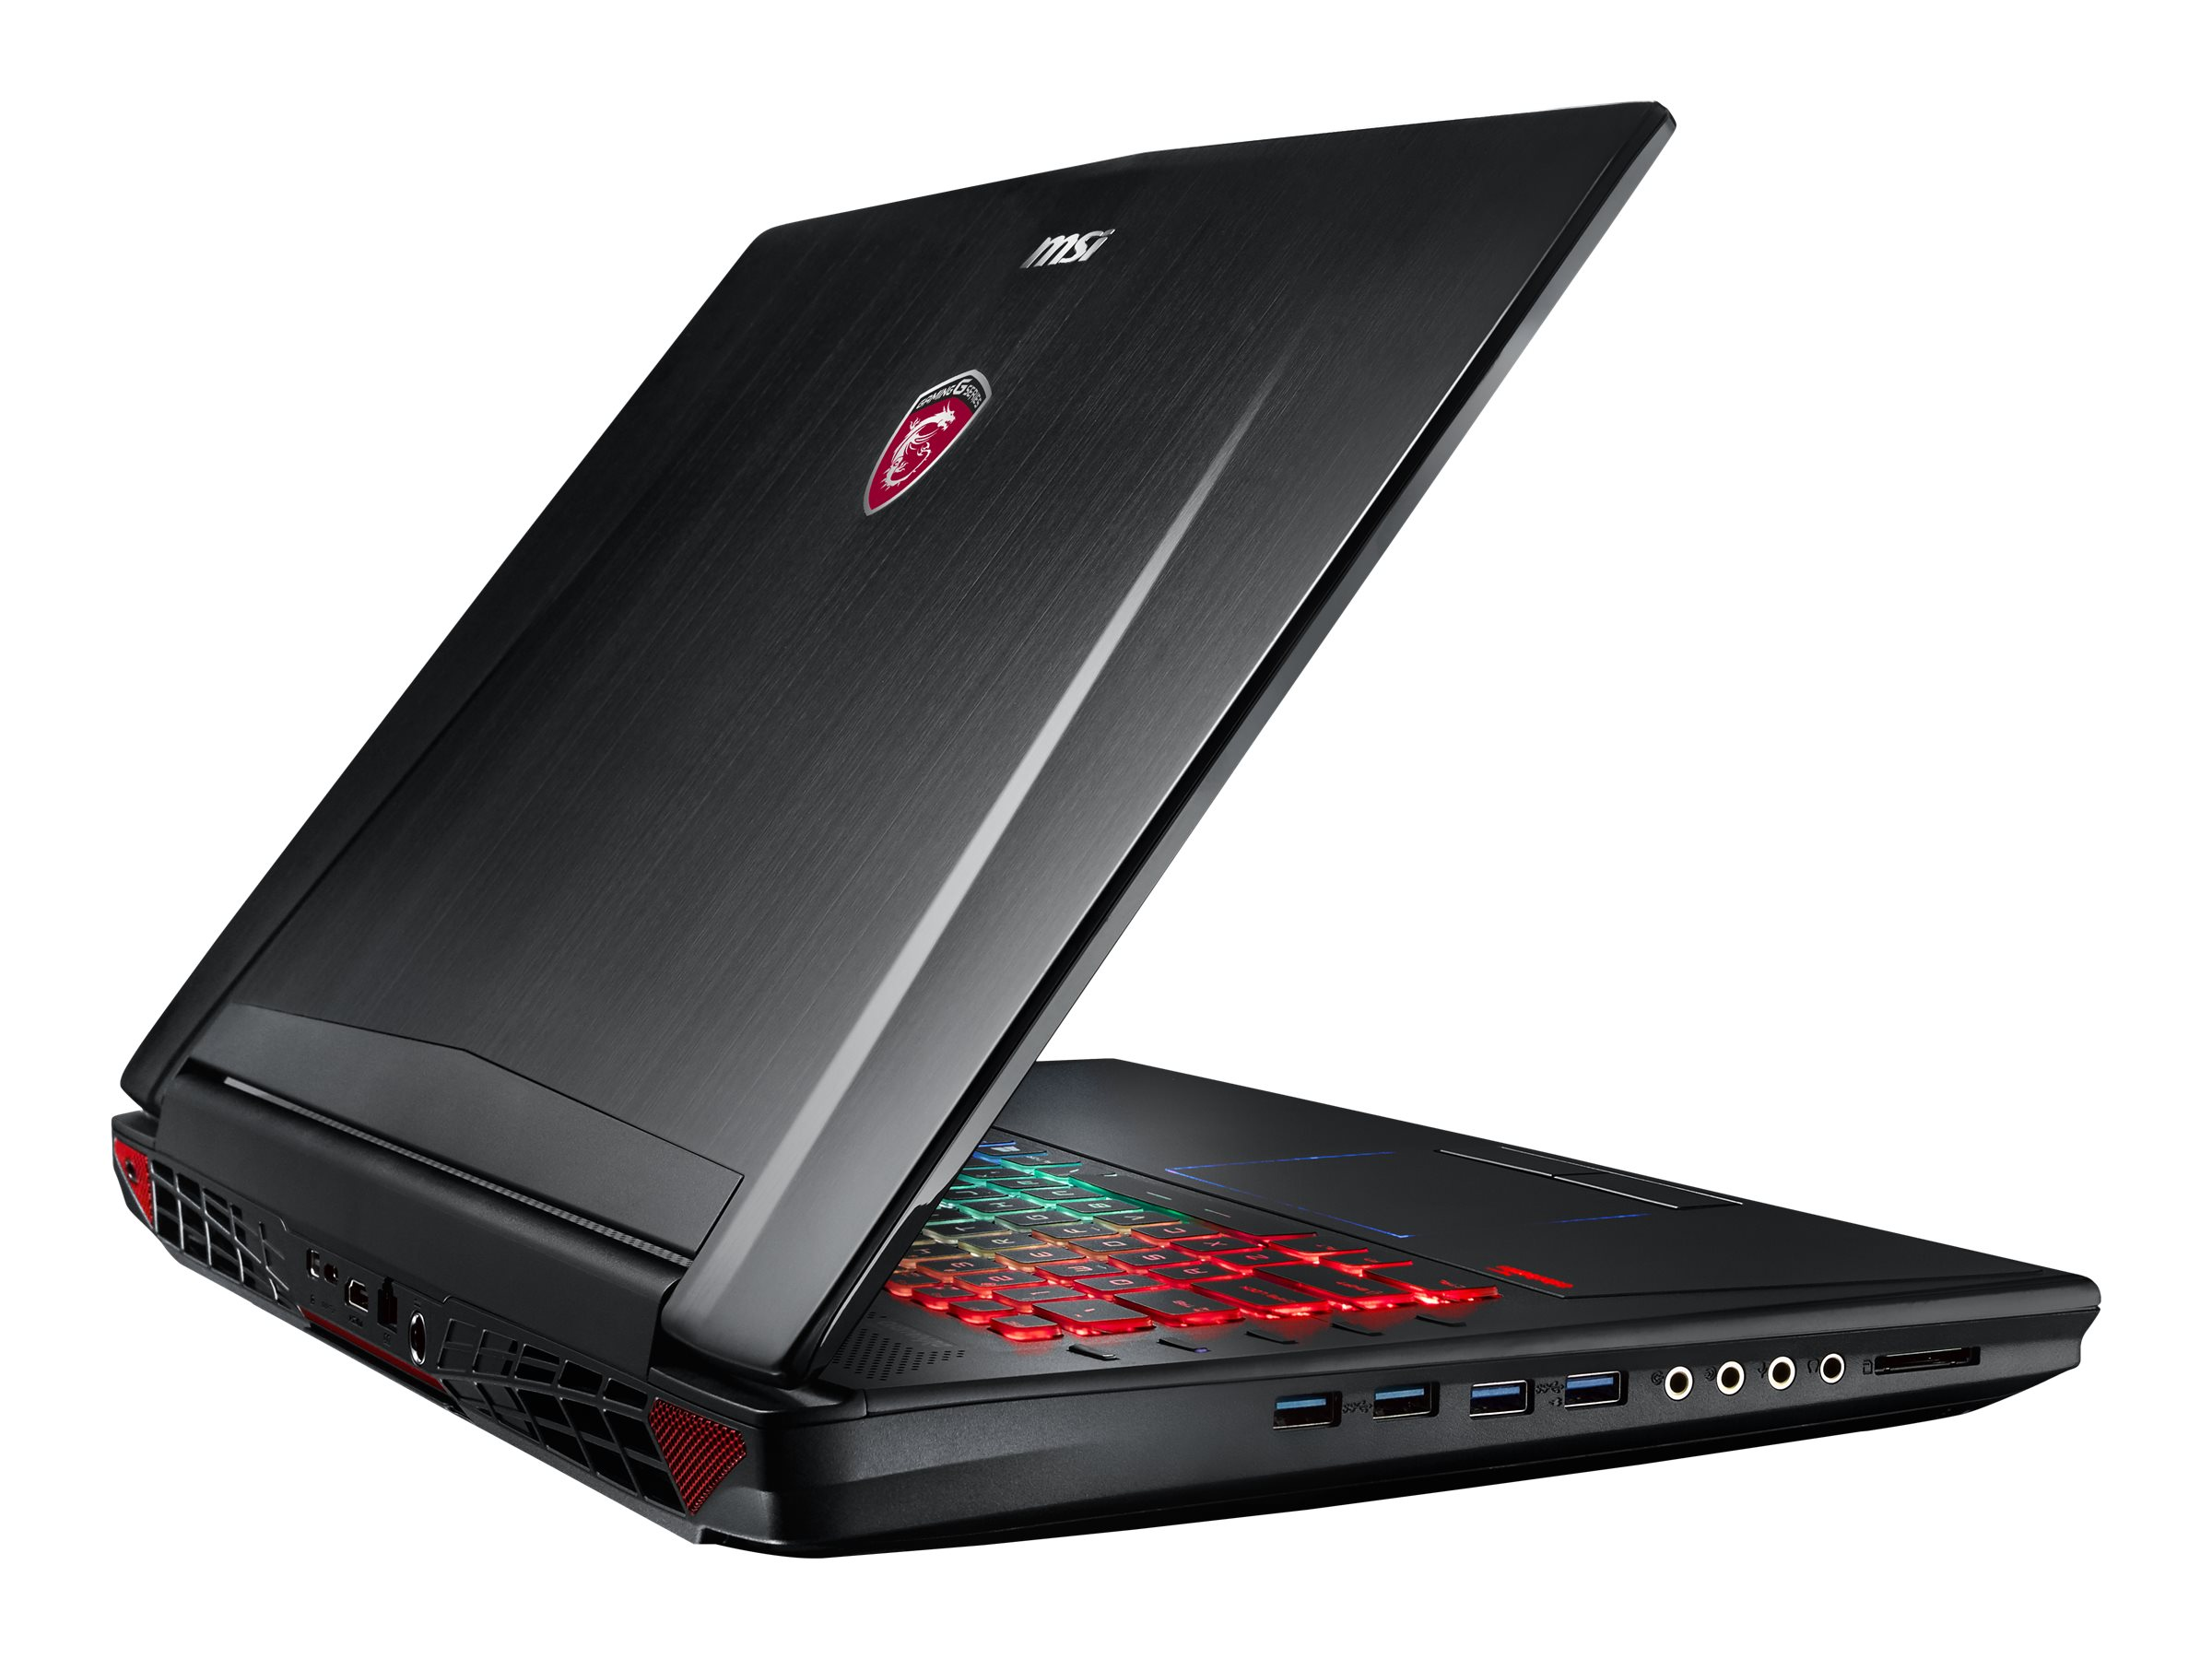 MSI Computer GT72VR286 Image 5